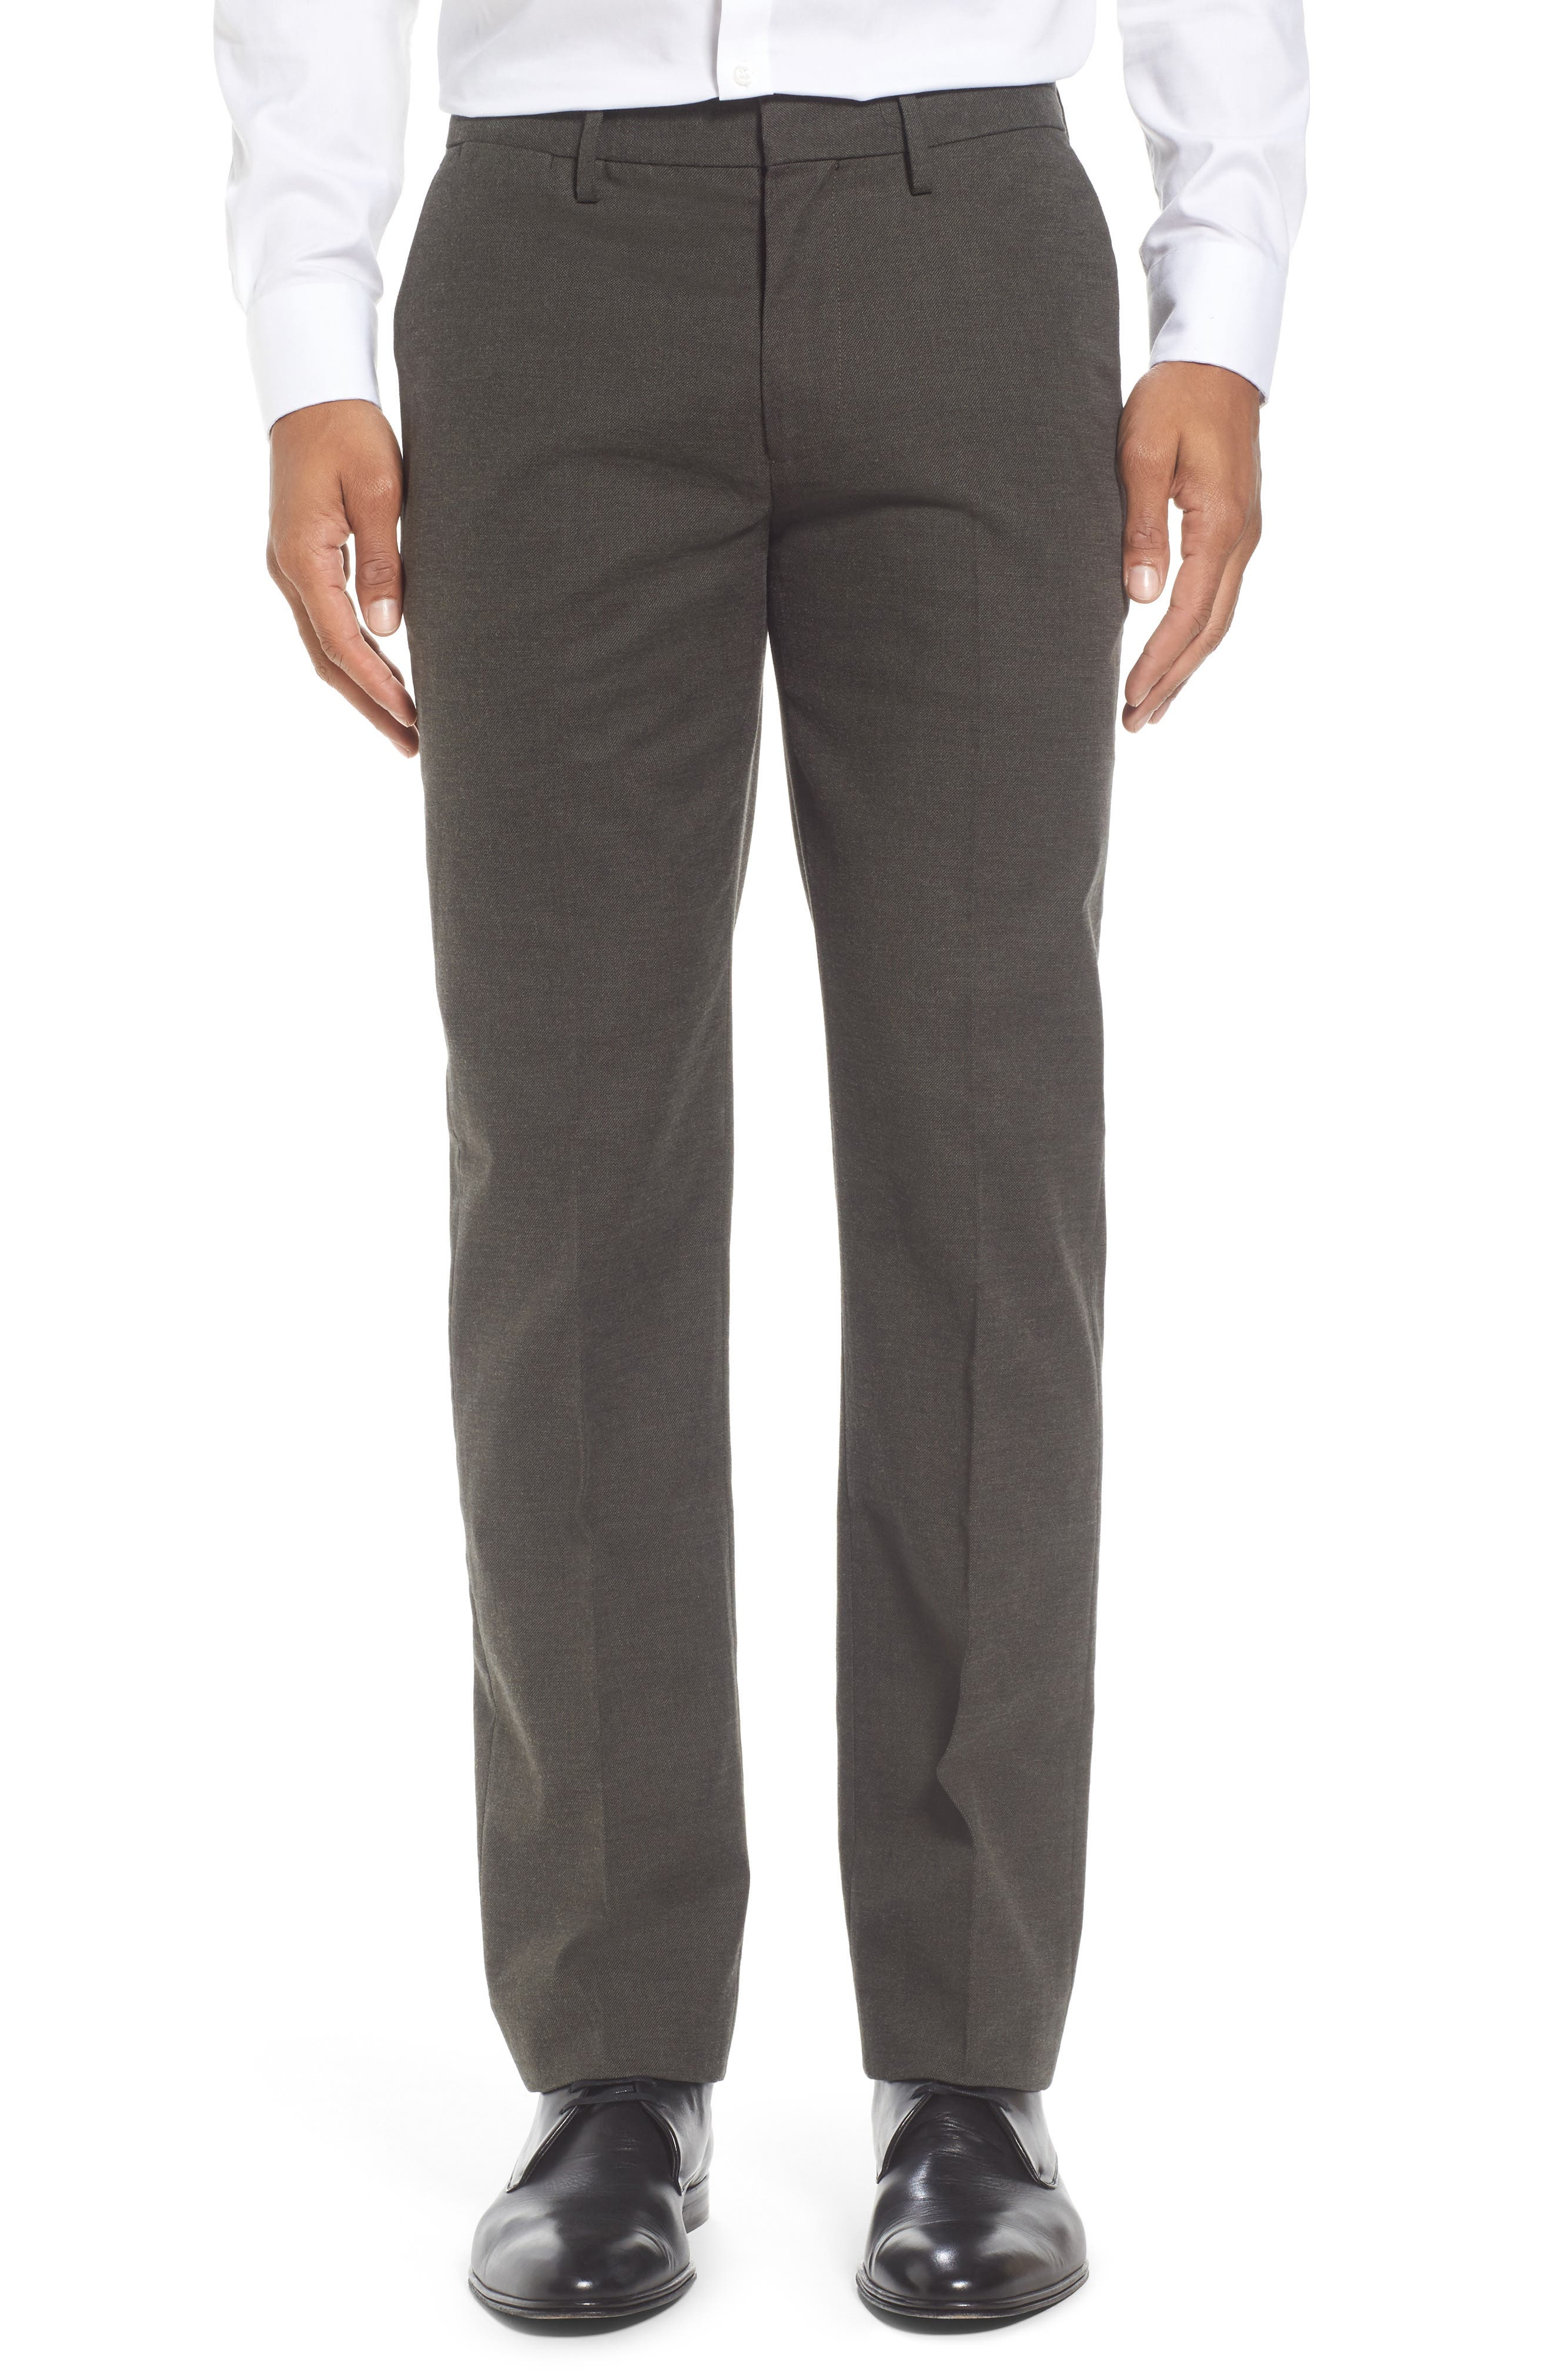 Bonobos Foundation Slim Fit Trousers